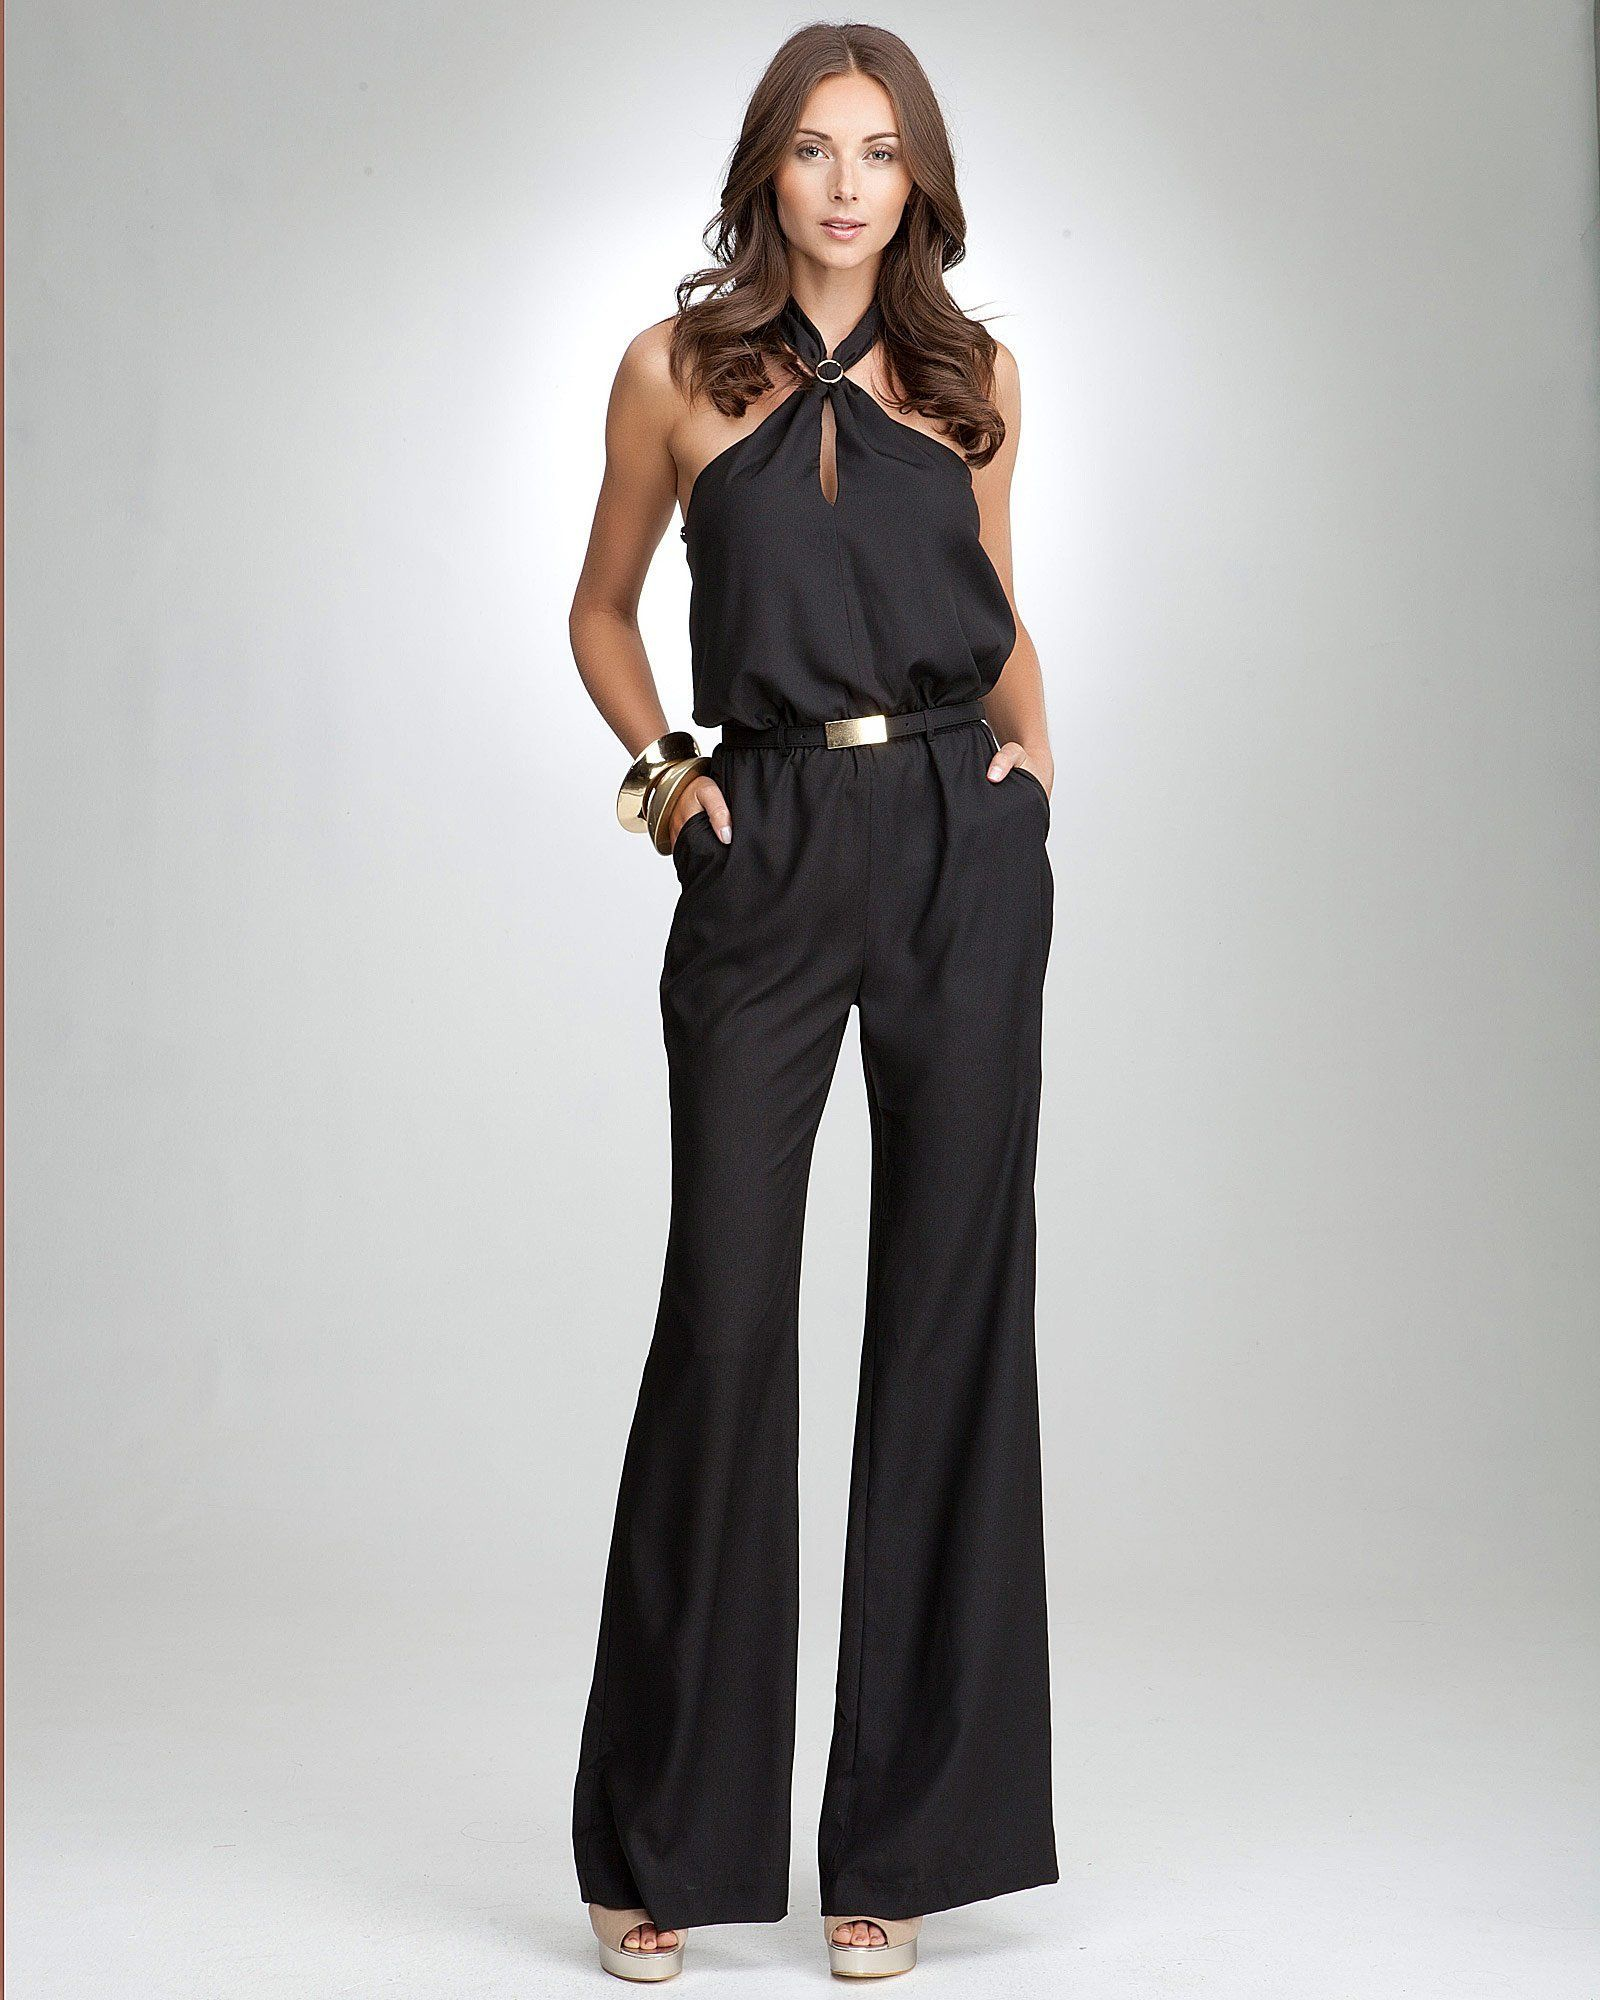 655dc6e72e1ae Halter Neck Wide-Leg Jumpsuit from bebe. I have no where to wear ...